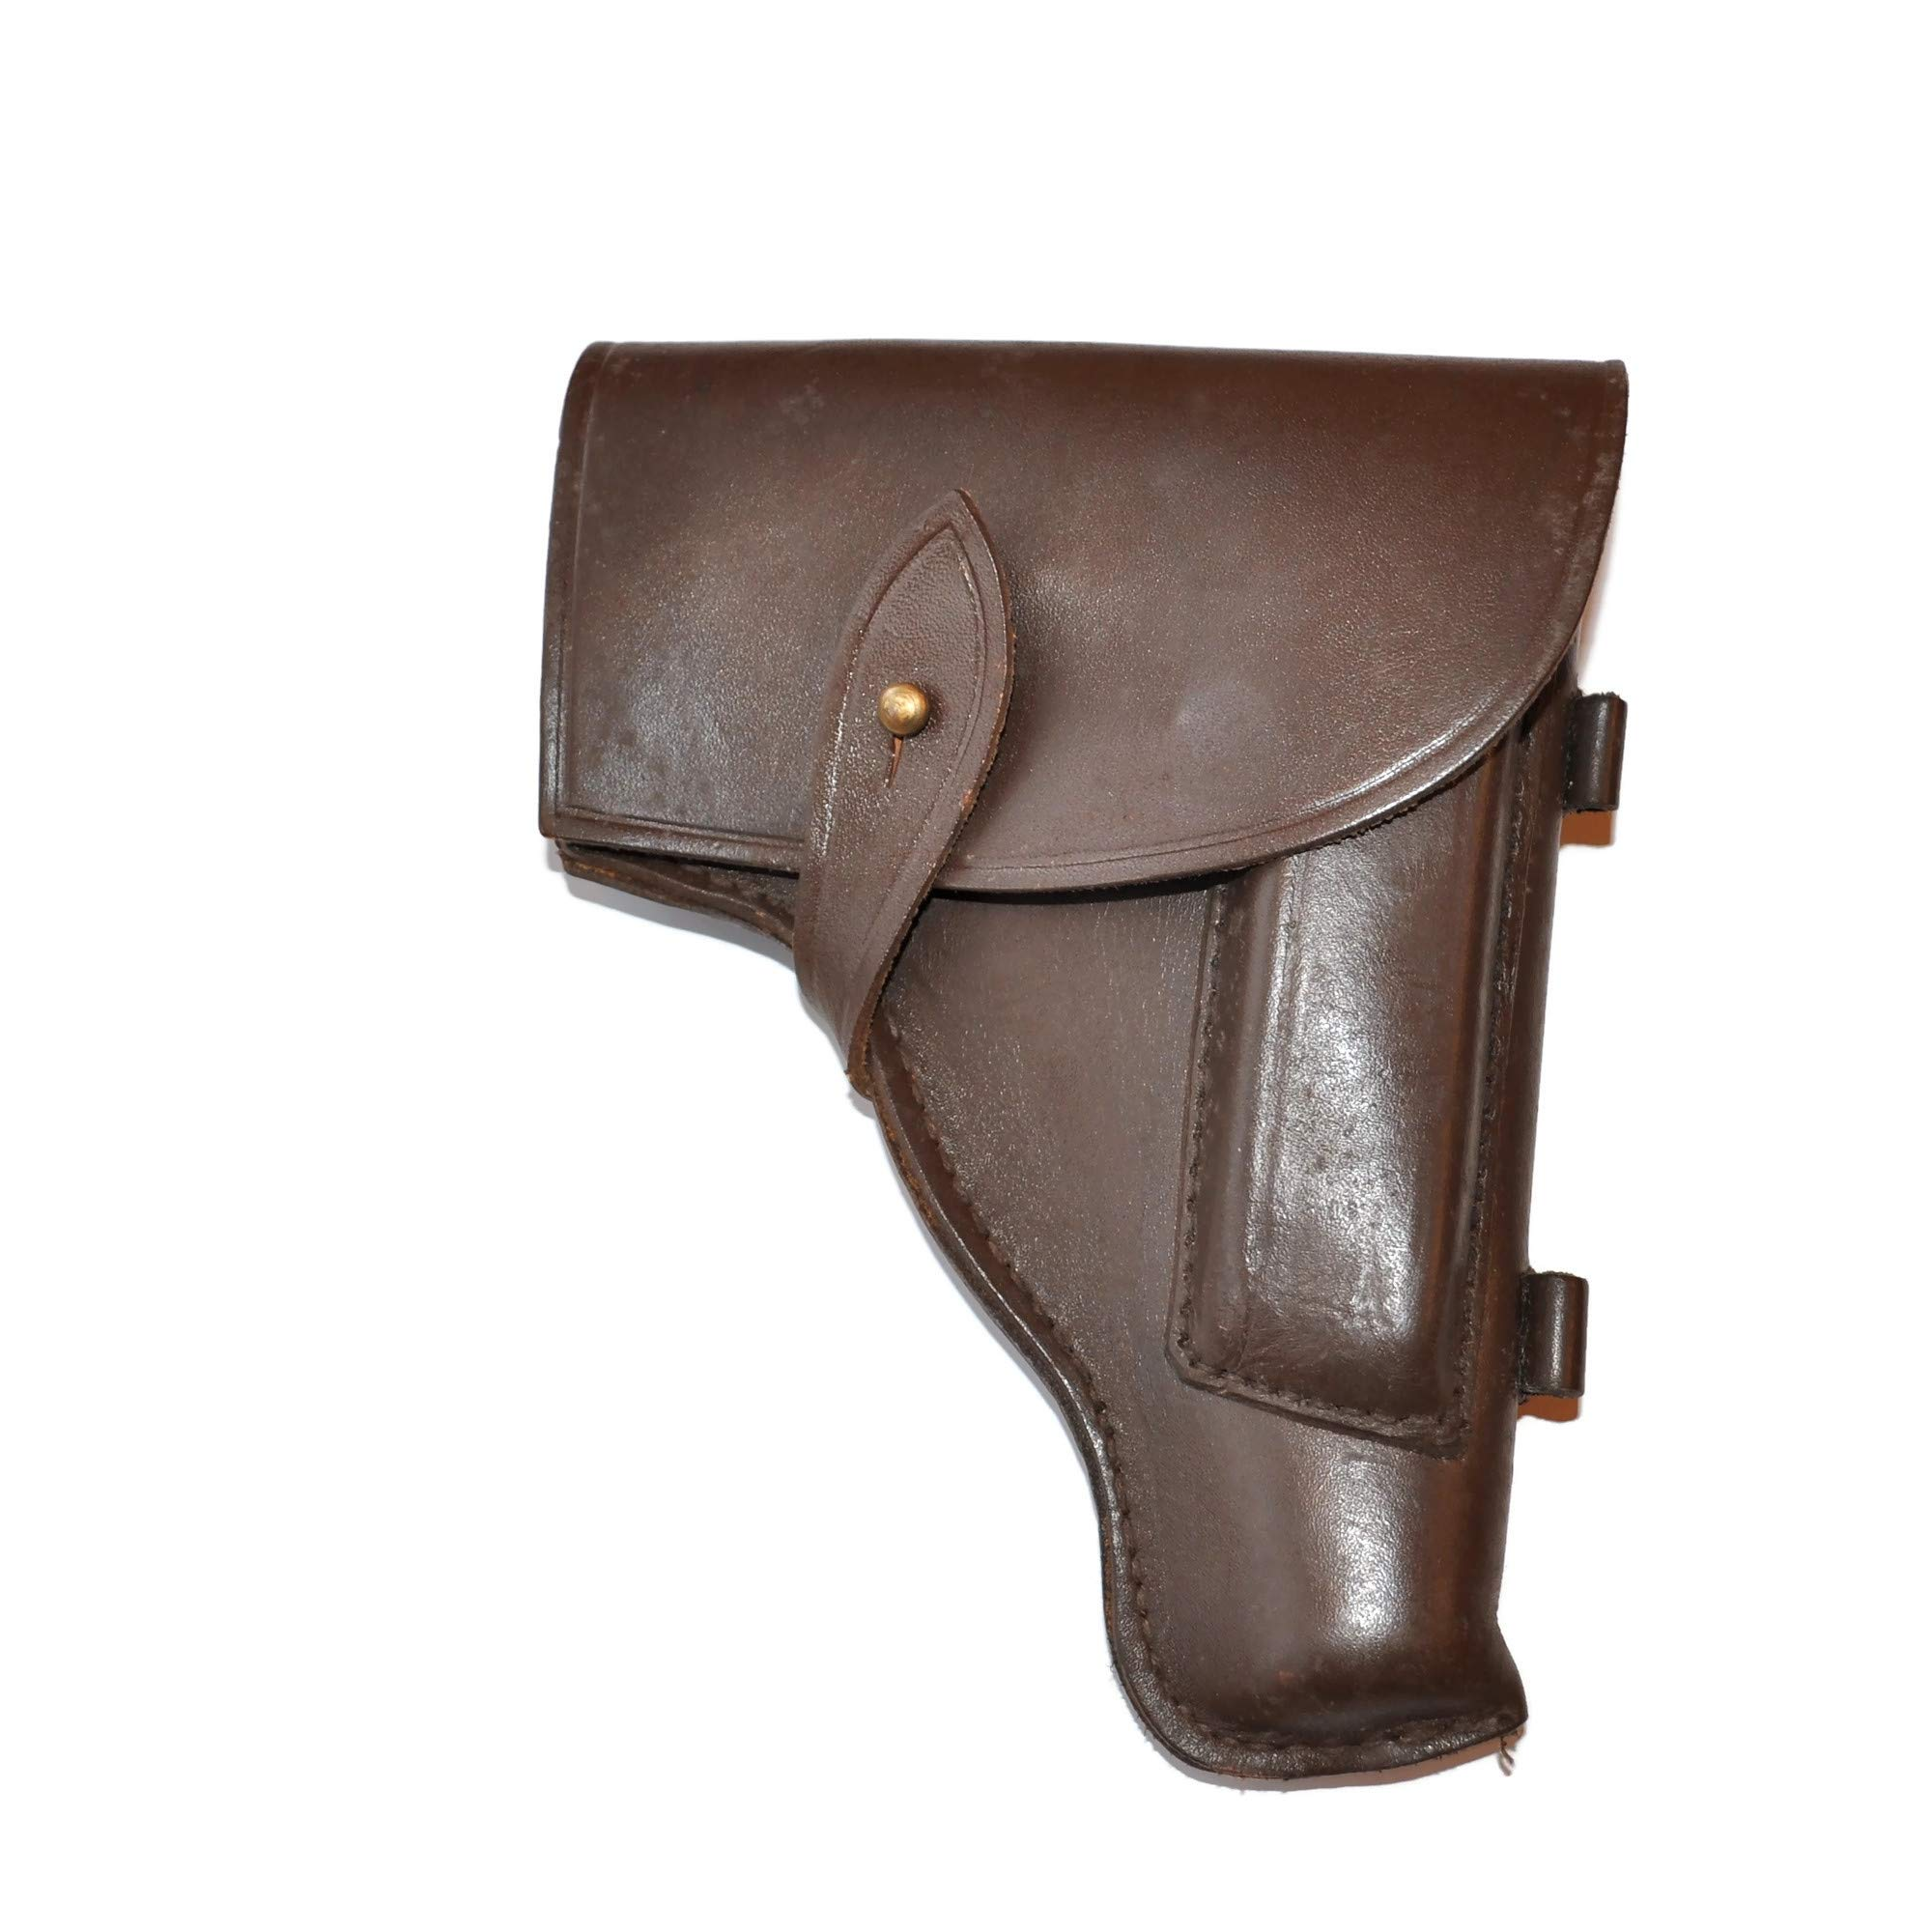 Made in UA. New Original Makarov PM Russian Army Military Leather Holster Belt